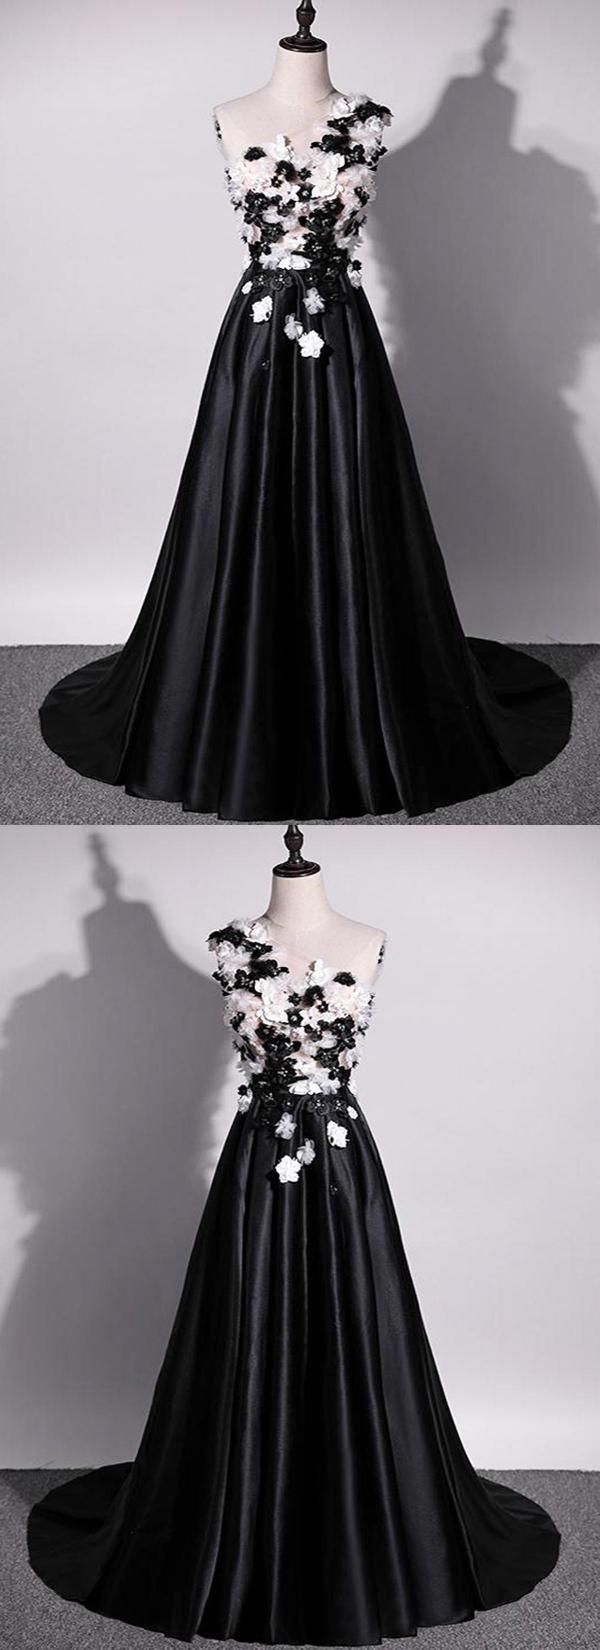 Black black and white lace sleeveless qprom prom dresses